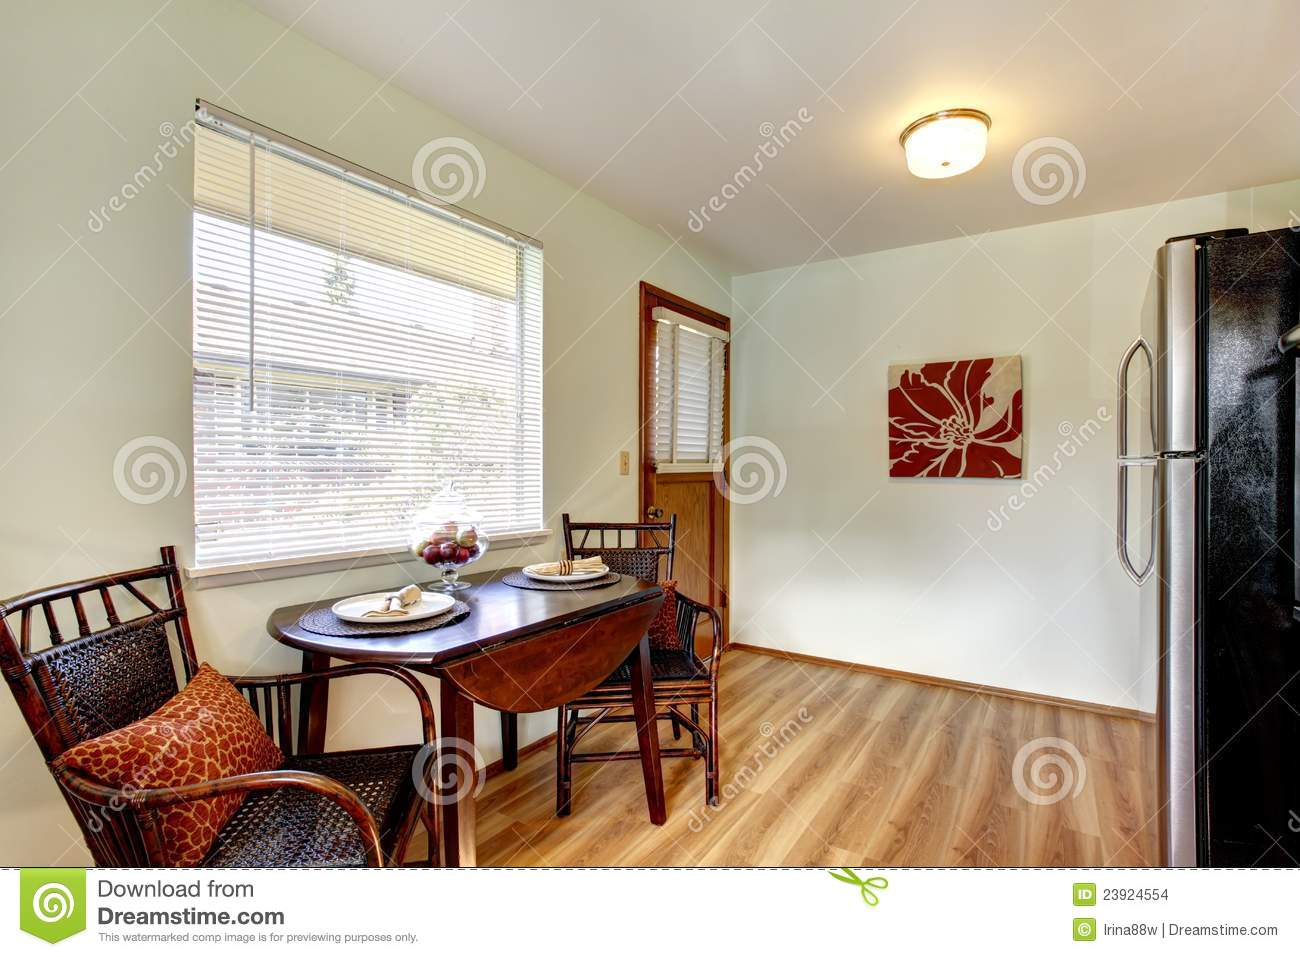 Small kitchen eating table area interior stock images for Small eating table